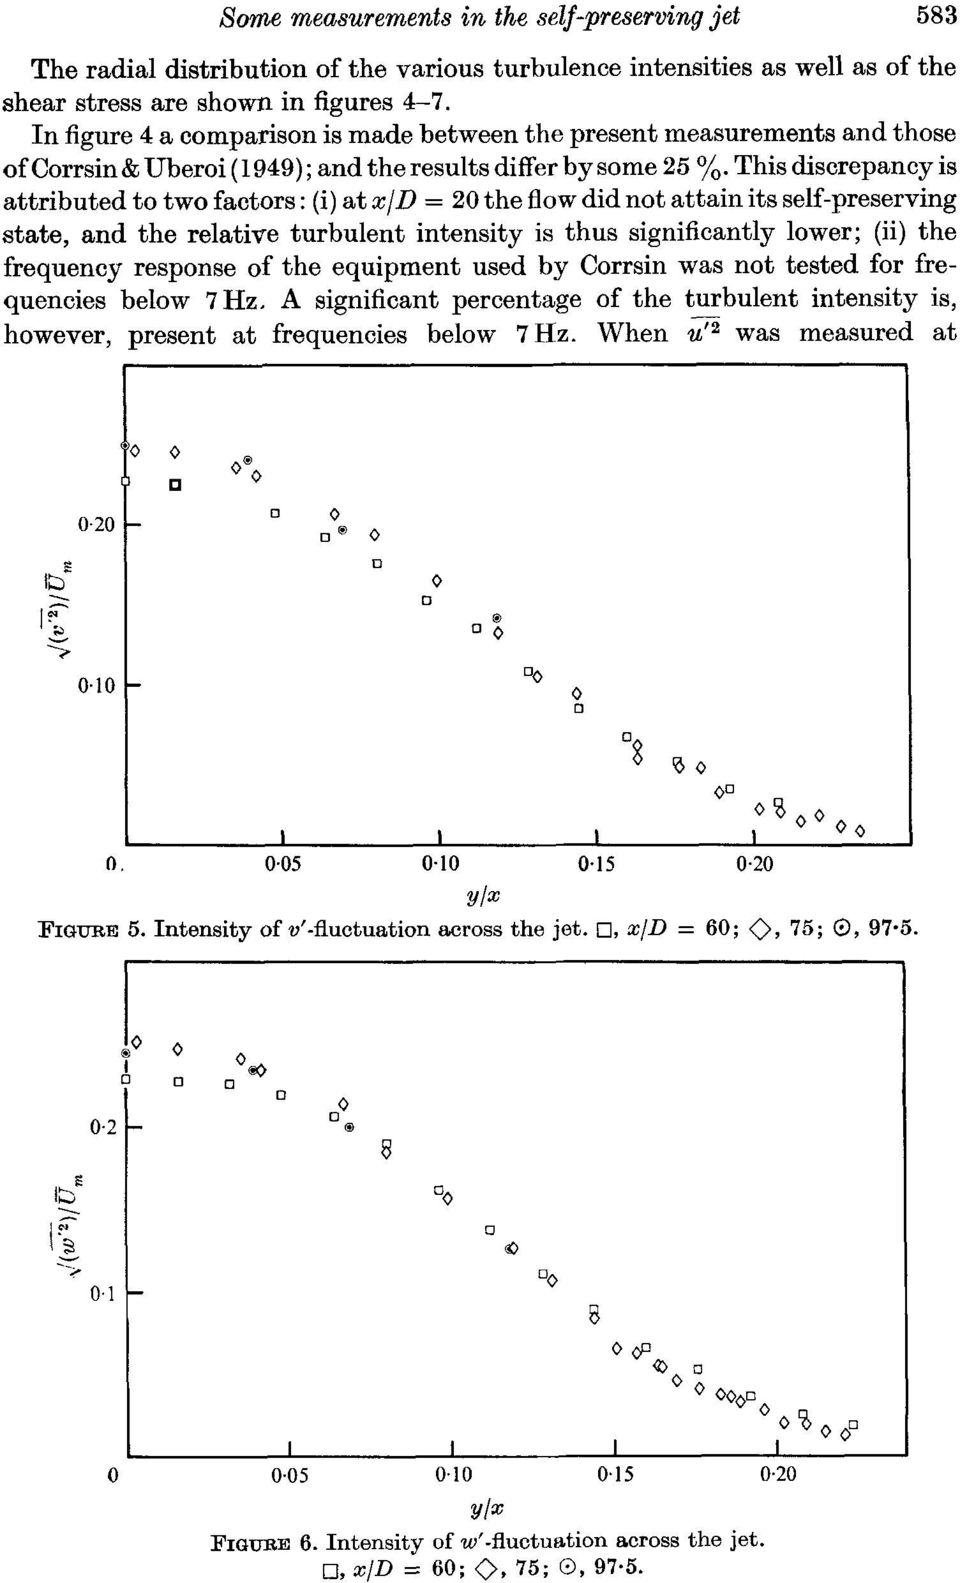 This discrepancy is attributed to two factors : (i) at x/d = 20 the 00w did not attain its self-preserving state, and the relative turbulent intensity is thus significantly lower; (ii) the frequency